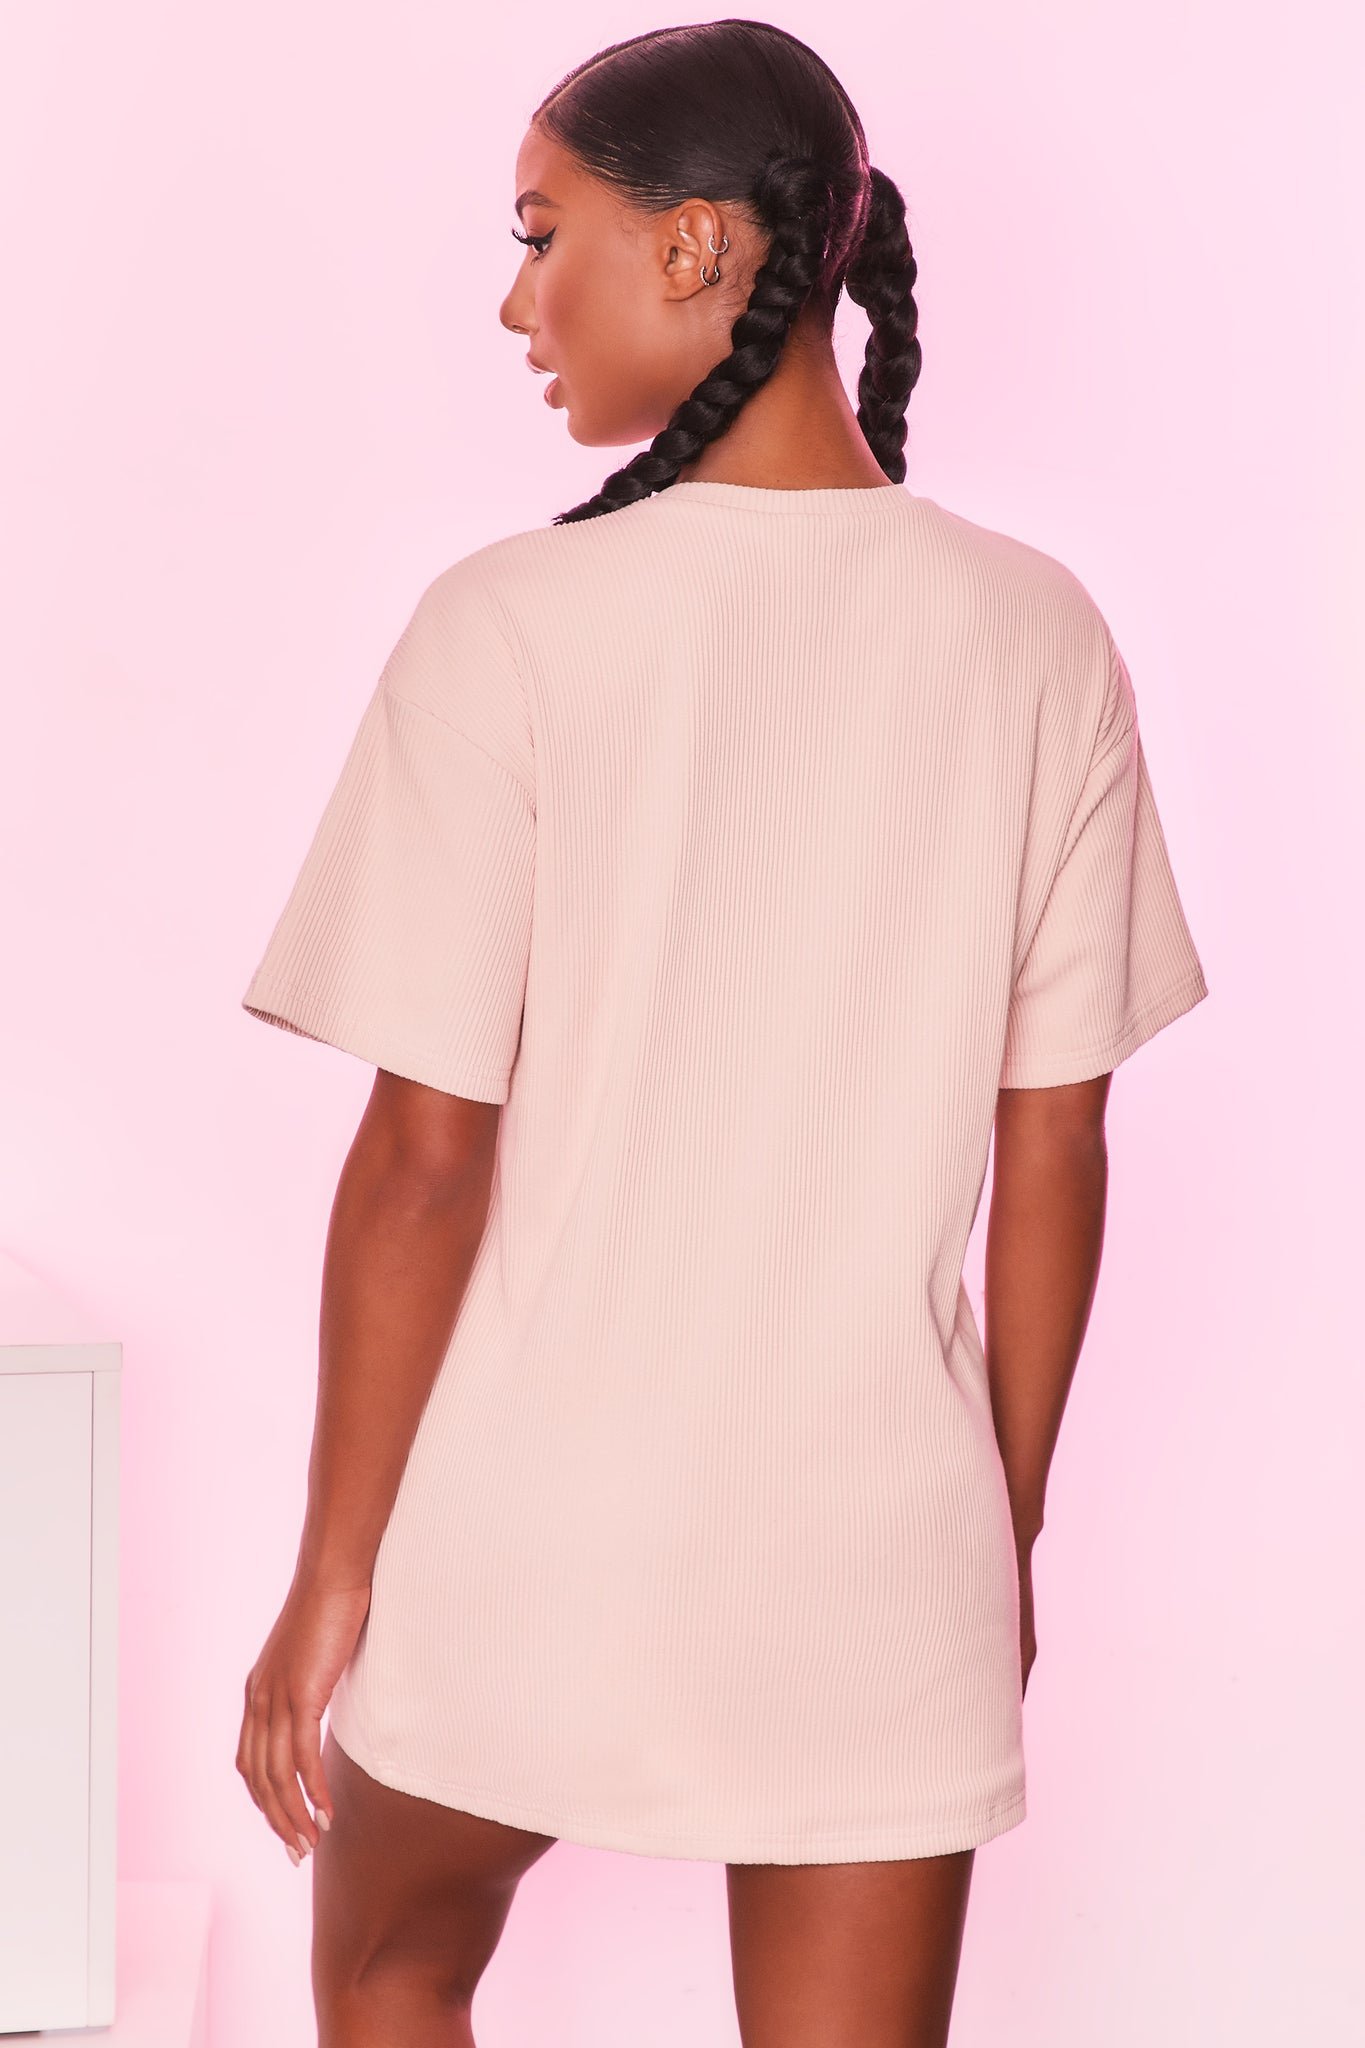 Round neck short sleeve oversized ribbed t-shirt in cream. Image 3 of 6.